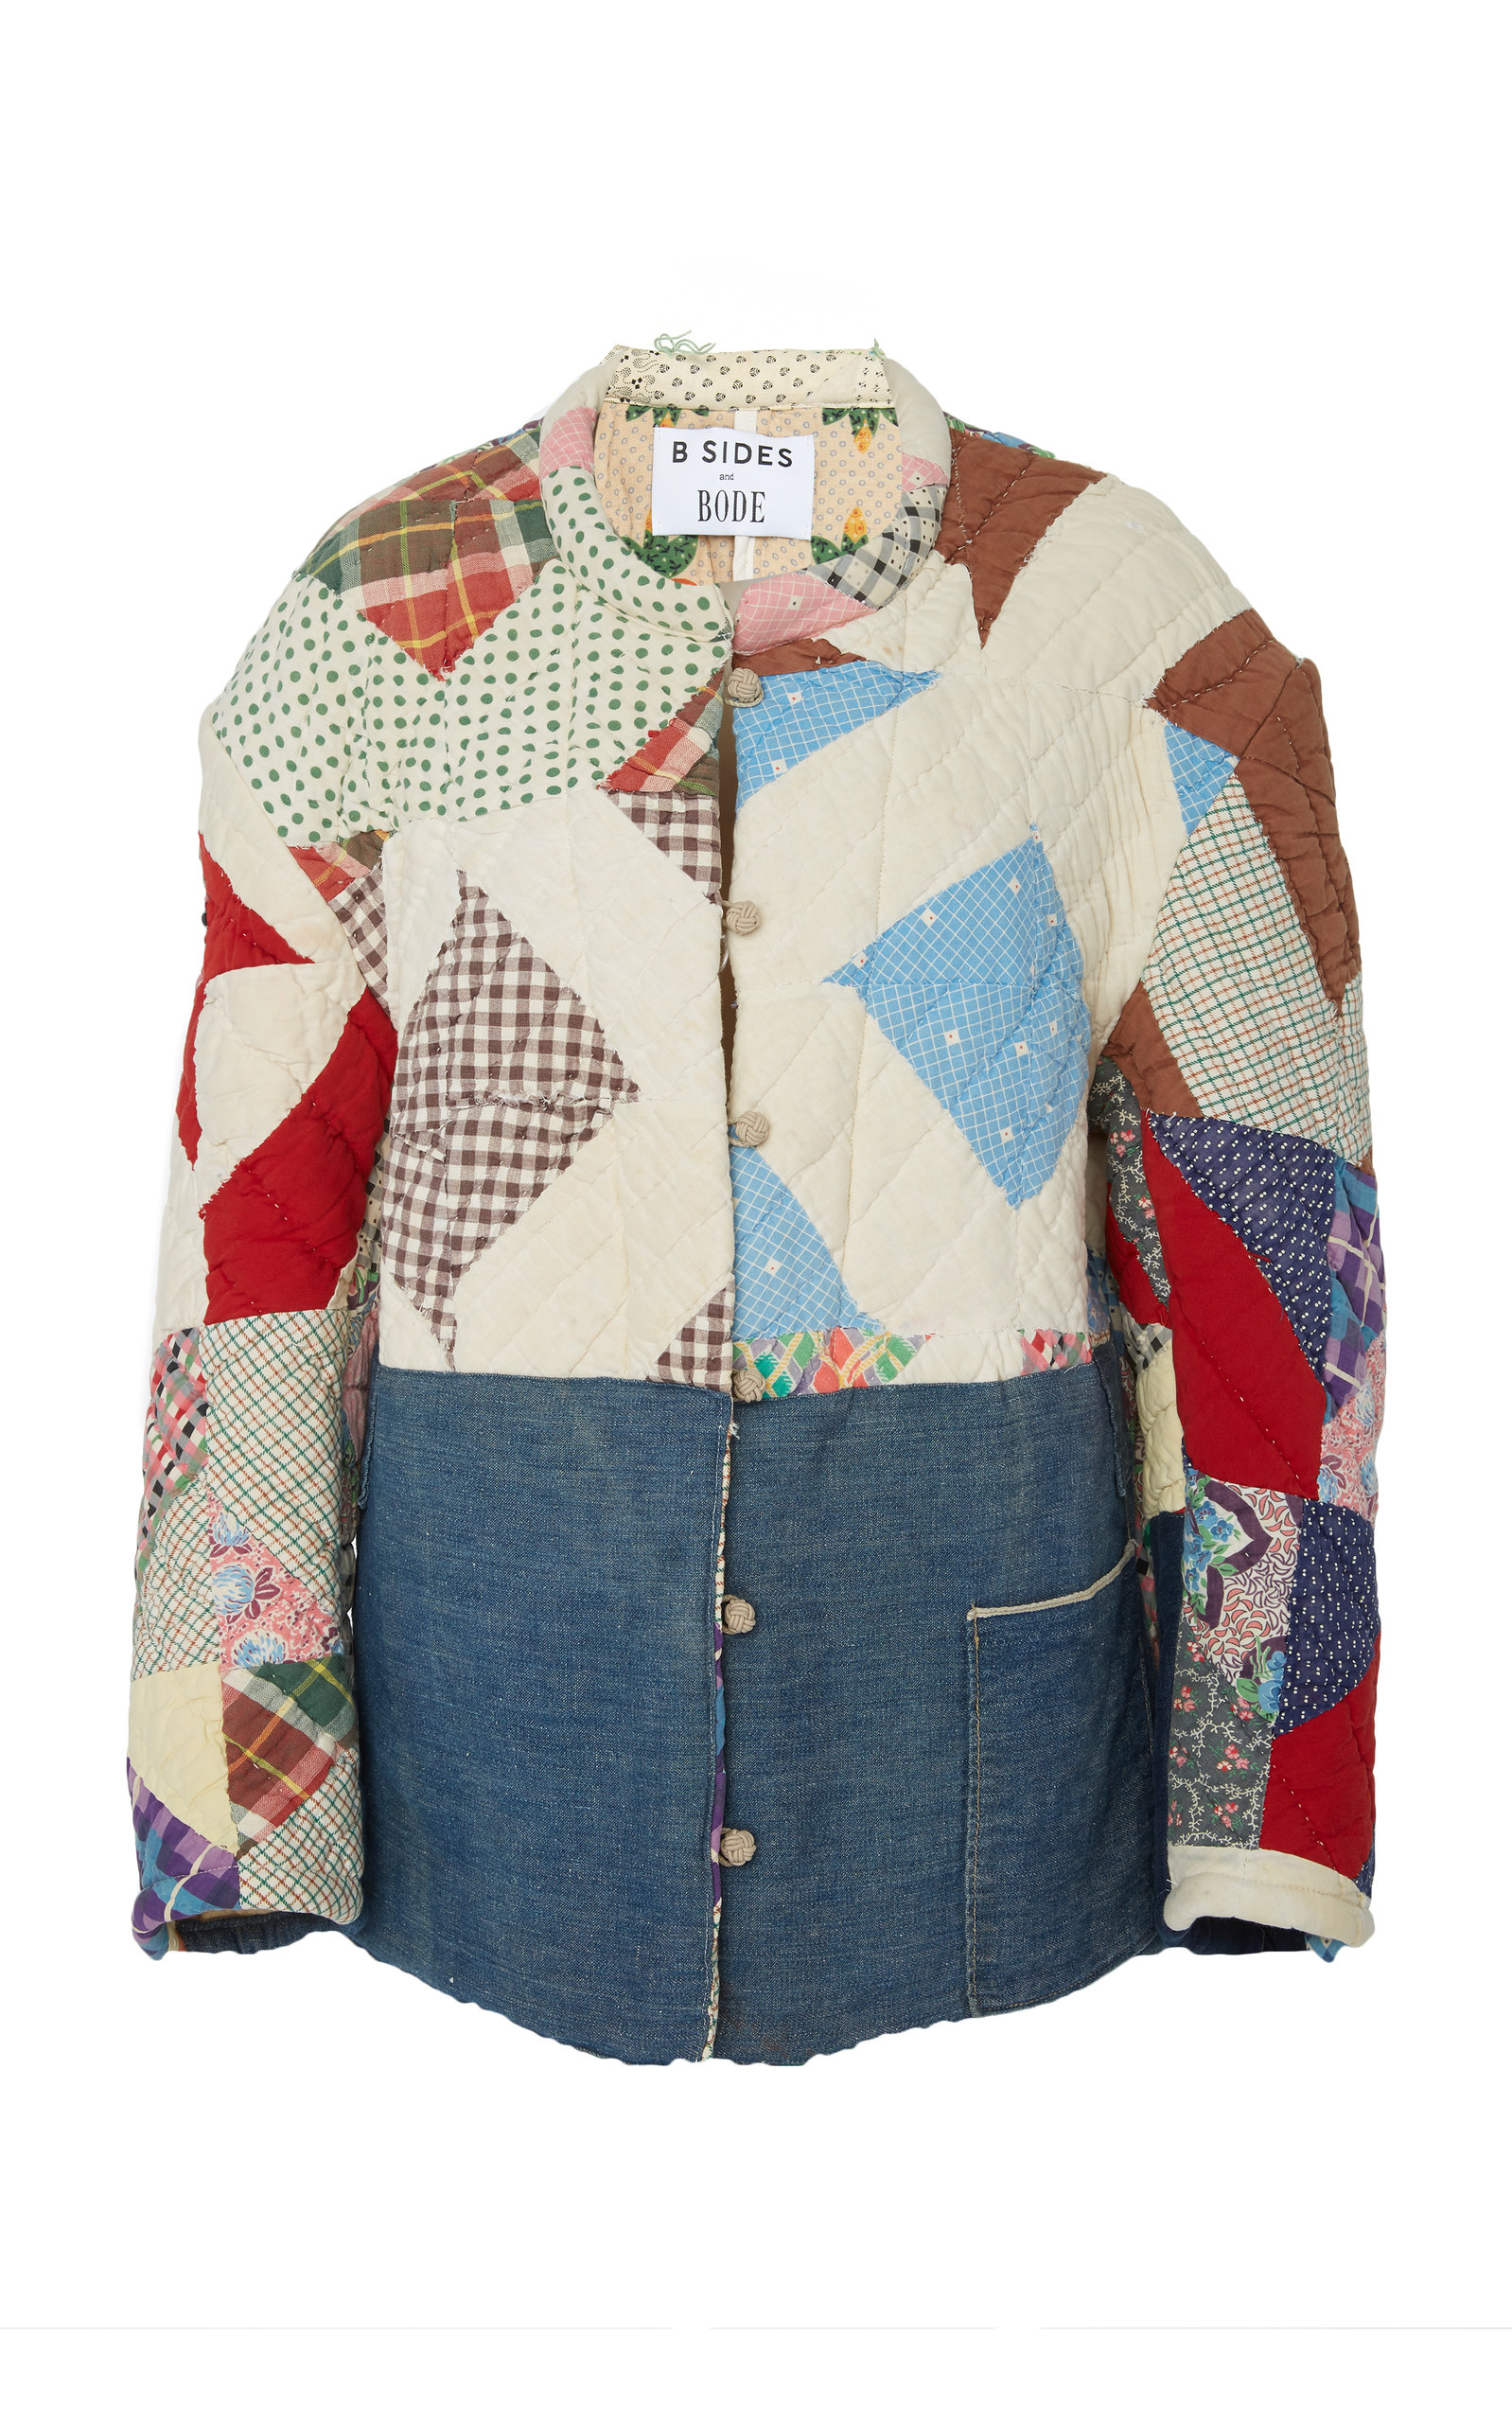 B SIDES Exclusive Patchwork Cotton Jacket in Multi